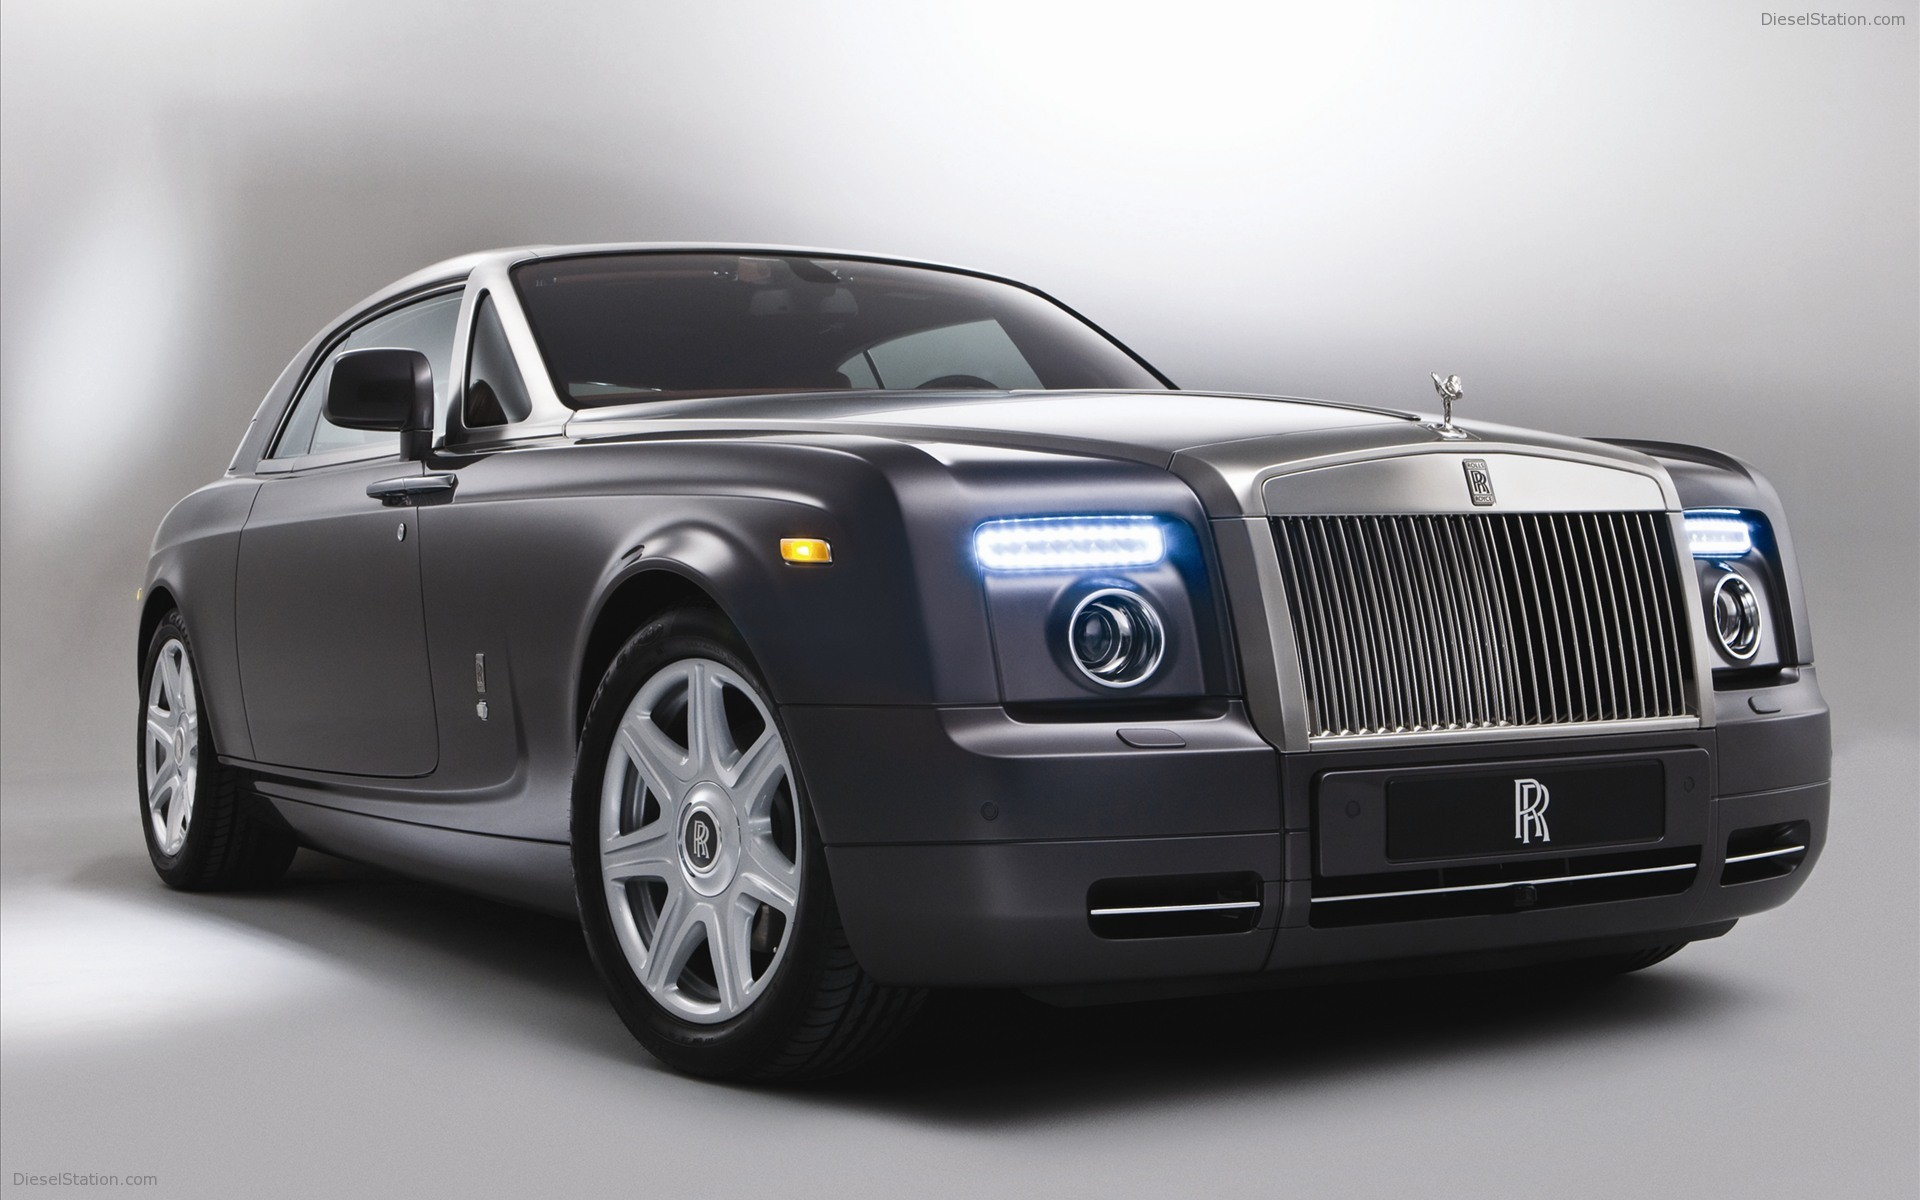 2008 Rolls royce Phantom #17